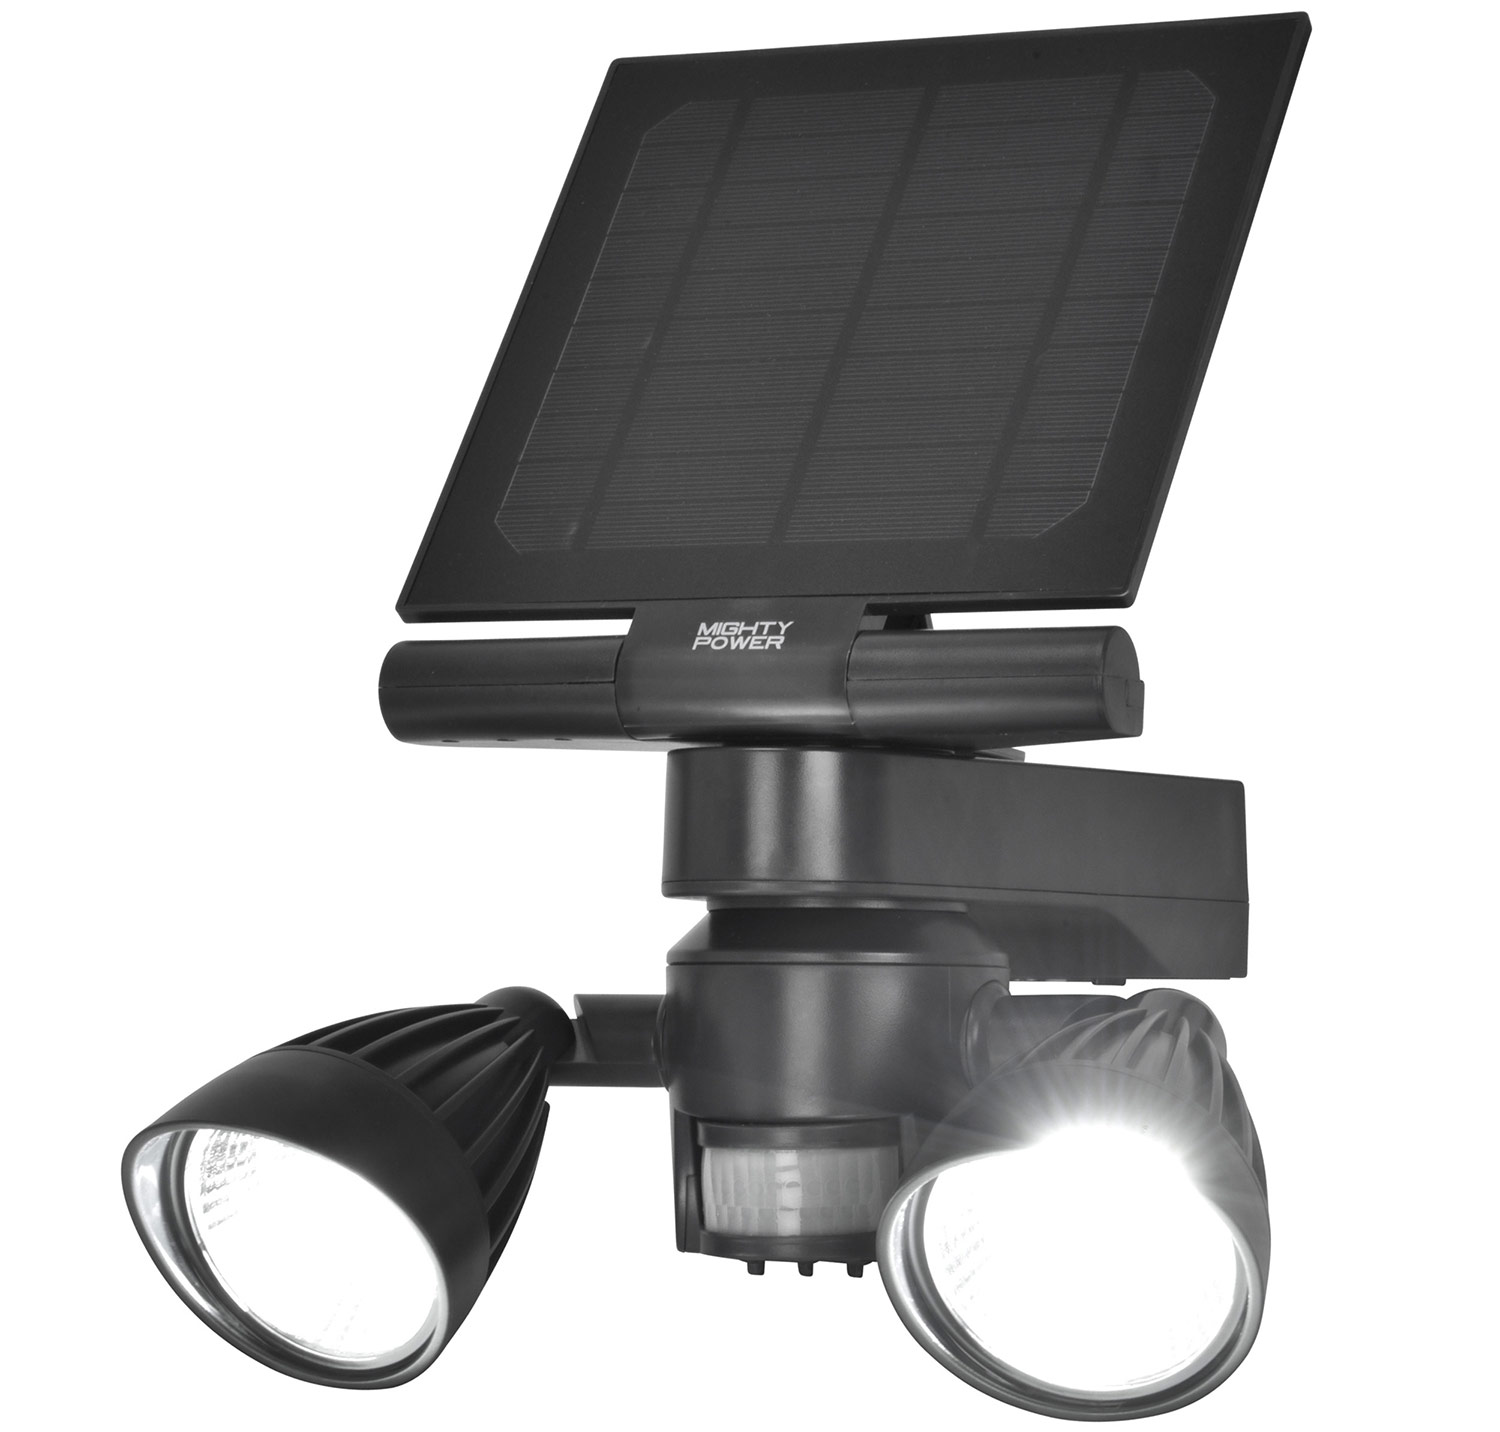 Mighty Power Outdoor Solar LED Security Flood Light, Black, 600 Lumens